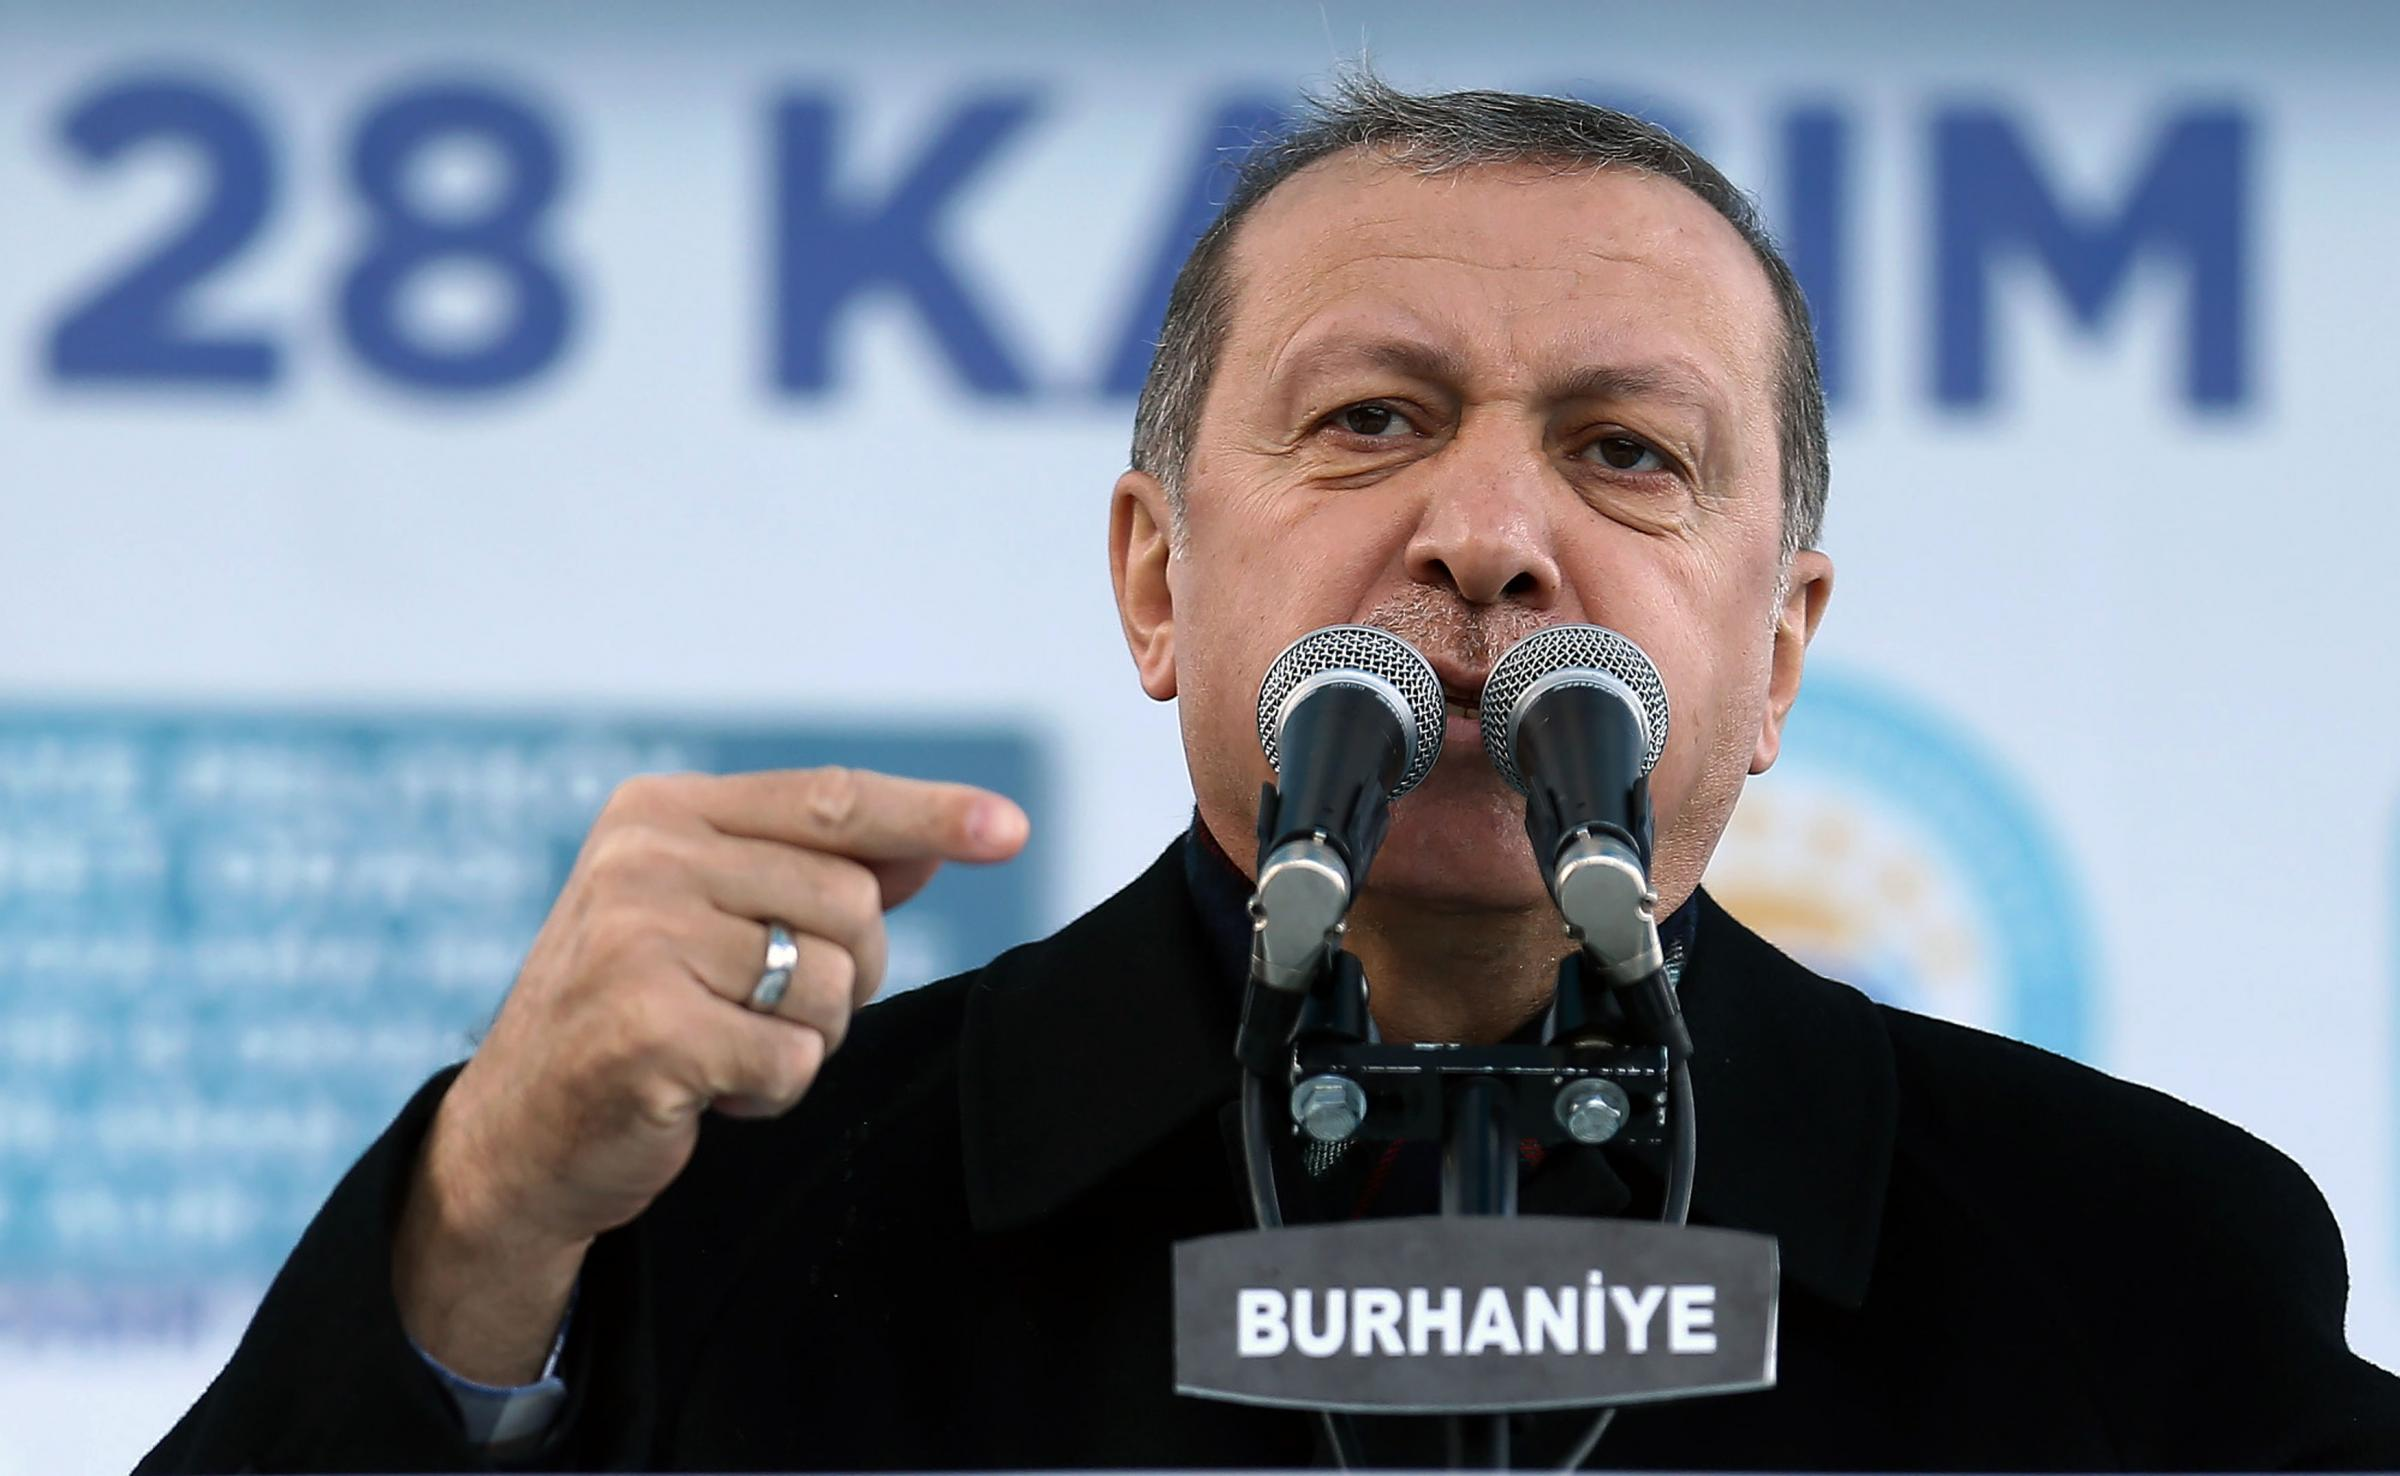 Turkish President Recep Tayyip Erdogan who wants to expand the powers of his office, has cited Hitler's Germany as an example of a presidential political system.